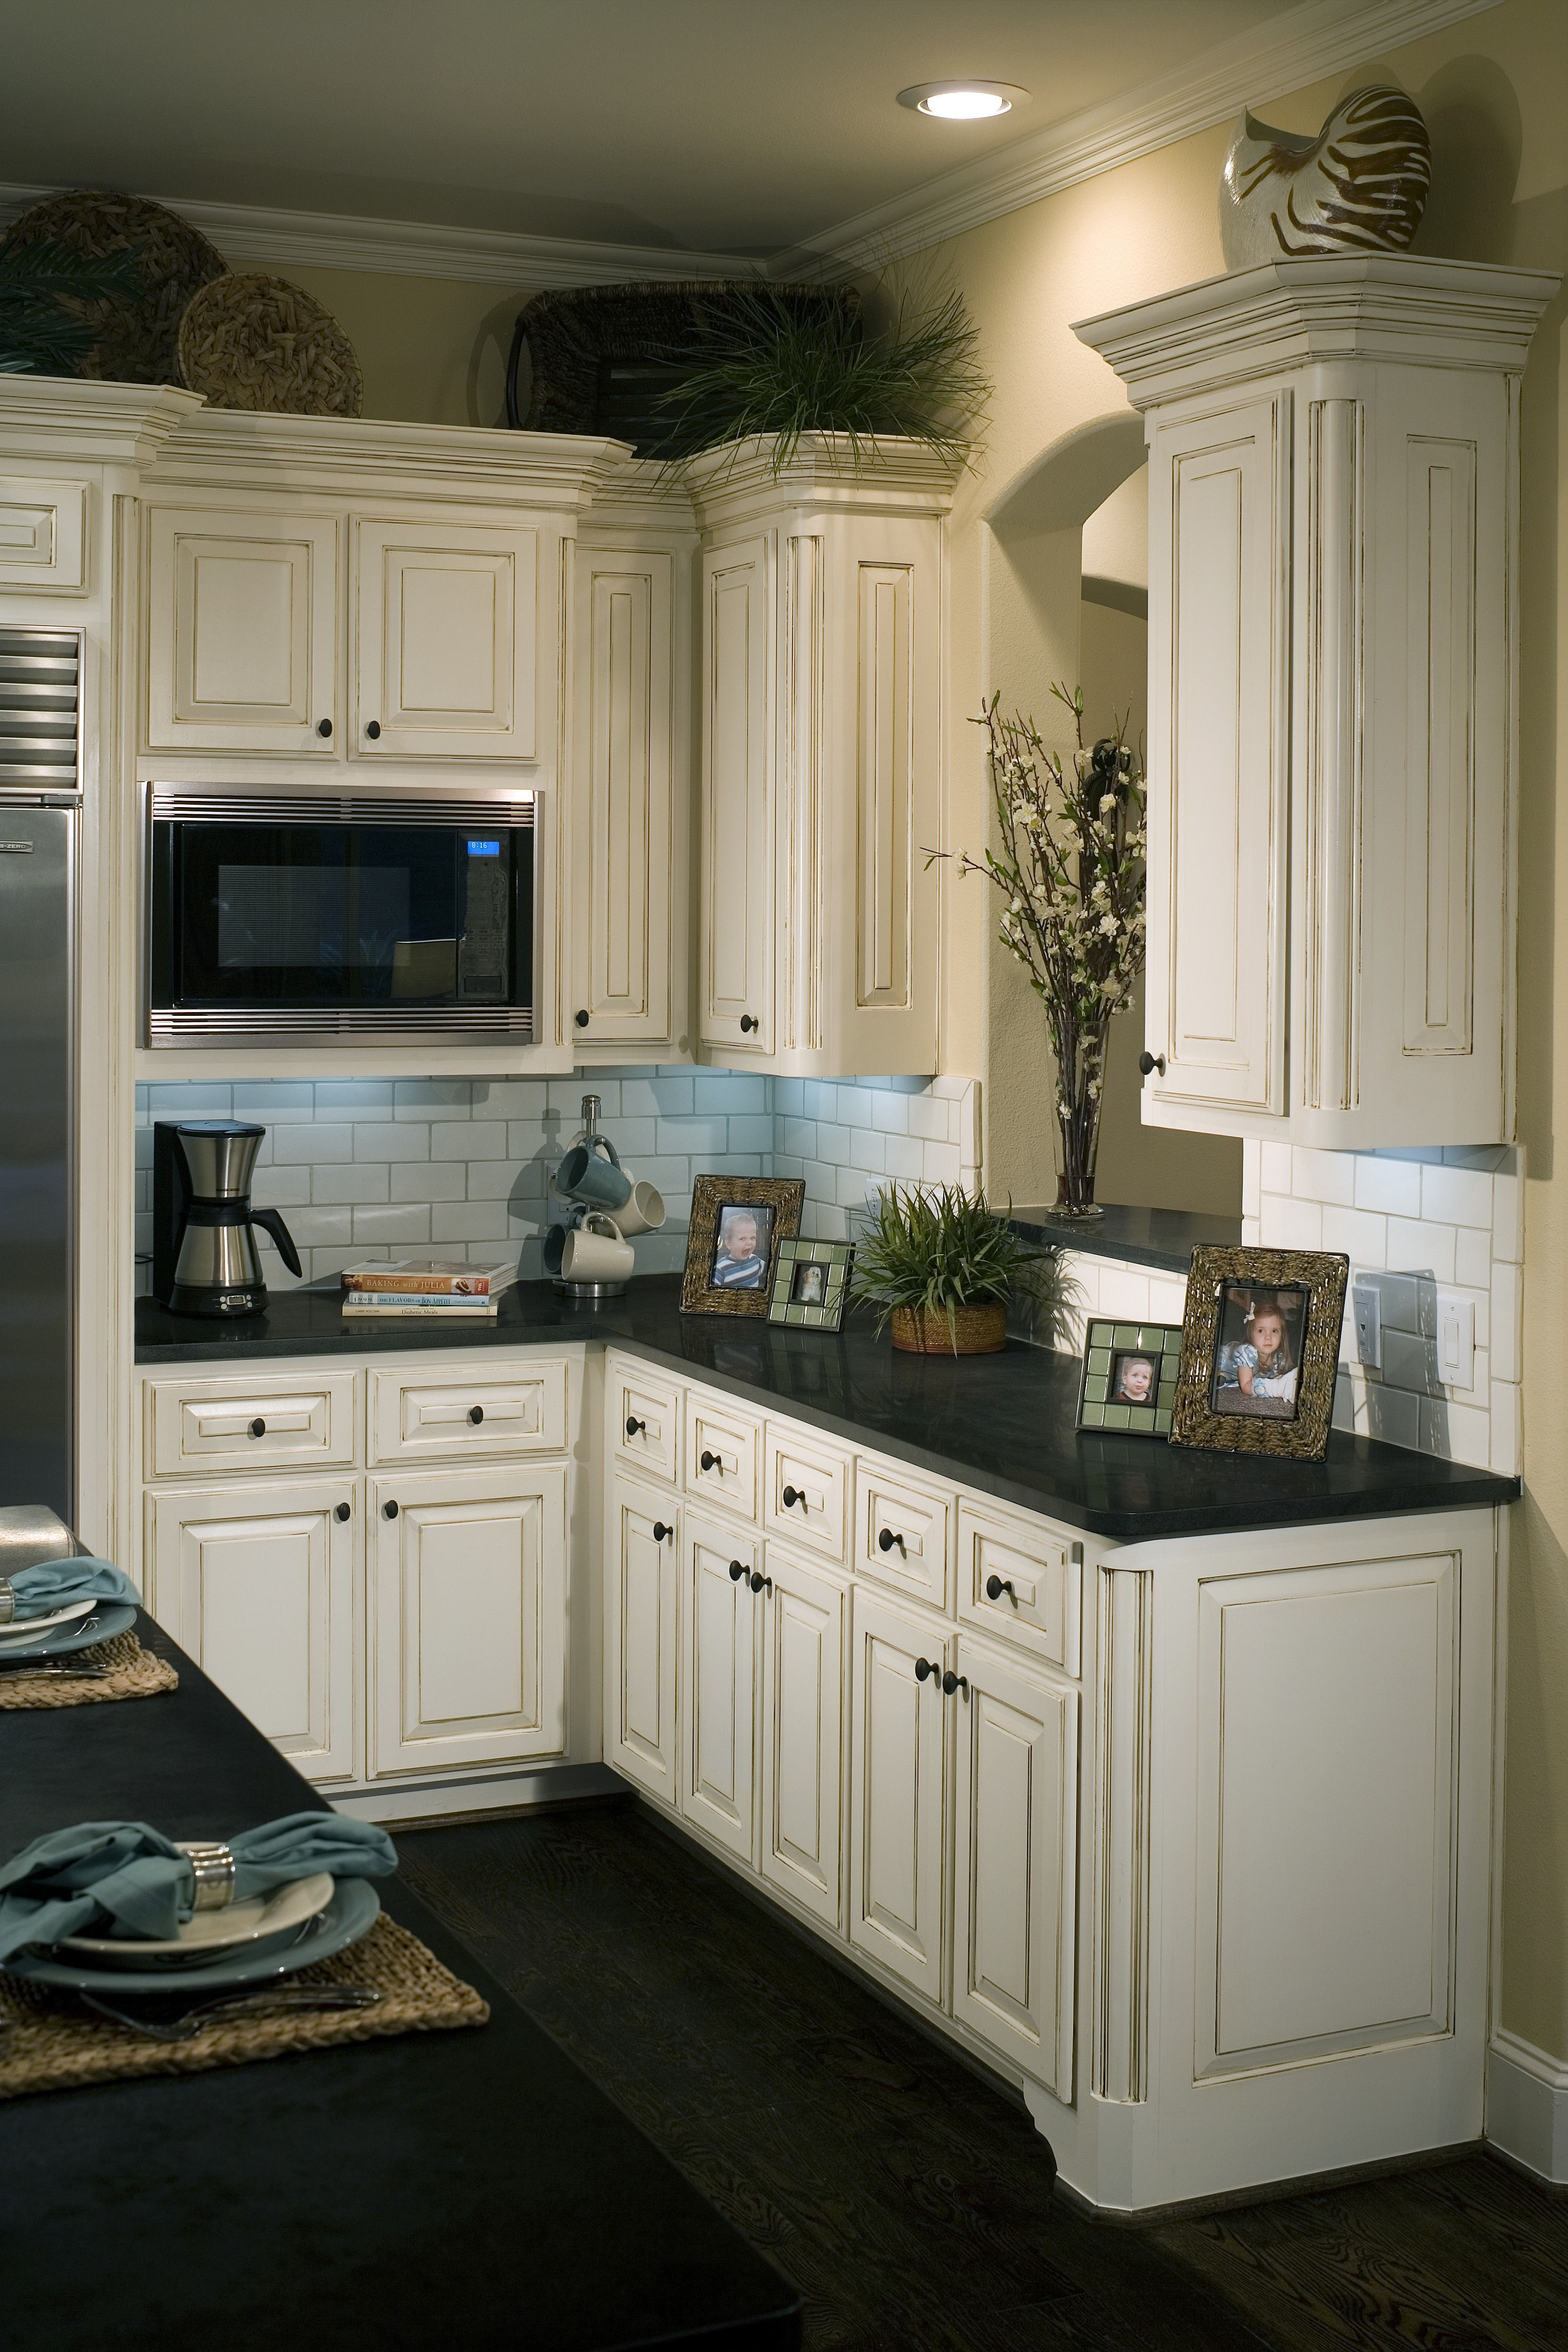 Kitchen Cabinet Options Install Reface Or Refinish Antique